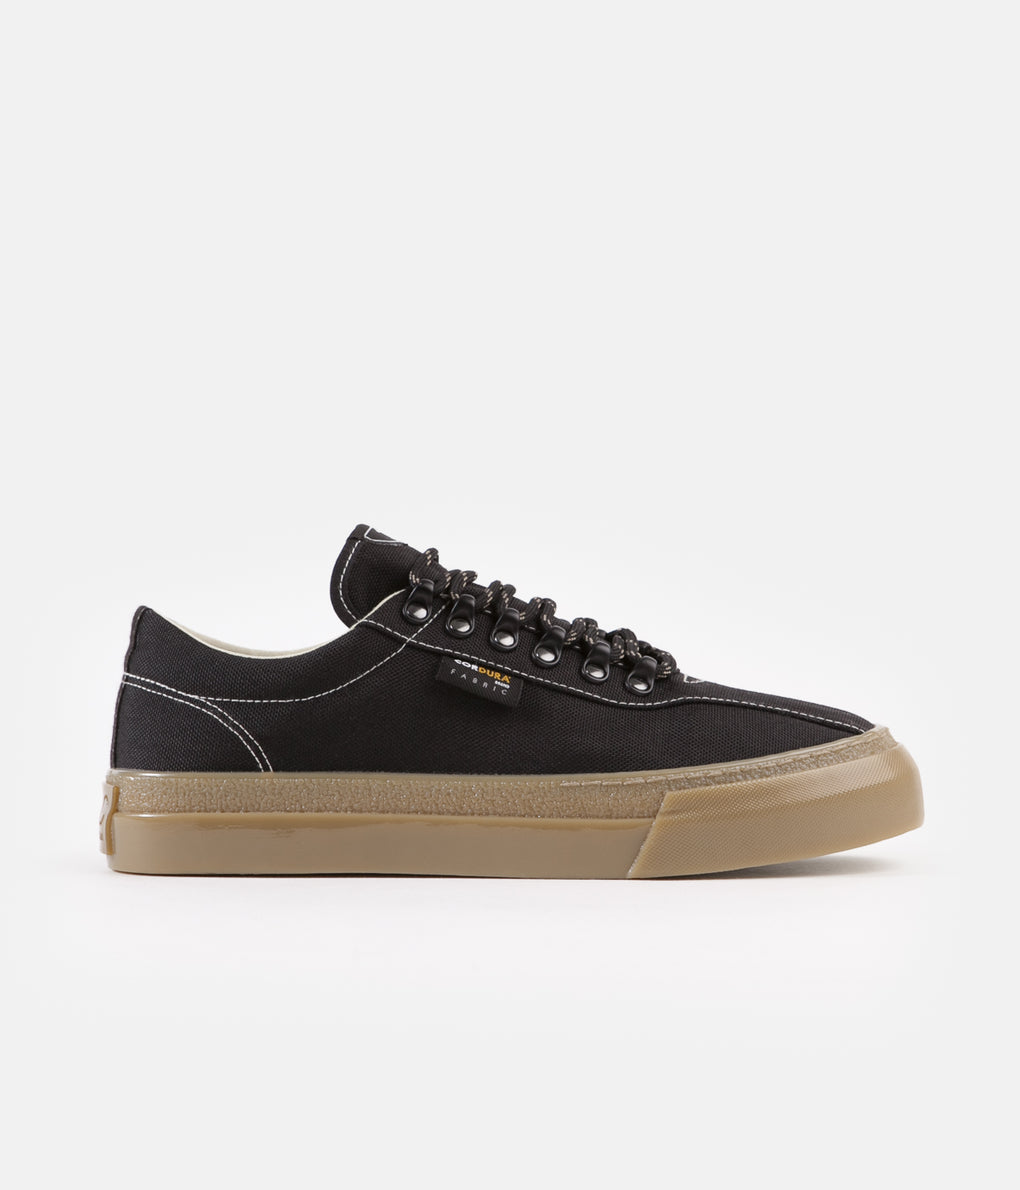 Stepney Workers Club Dellow Cordura Shoes - Black / Gum